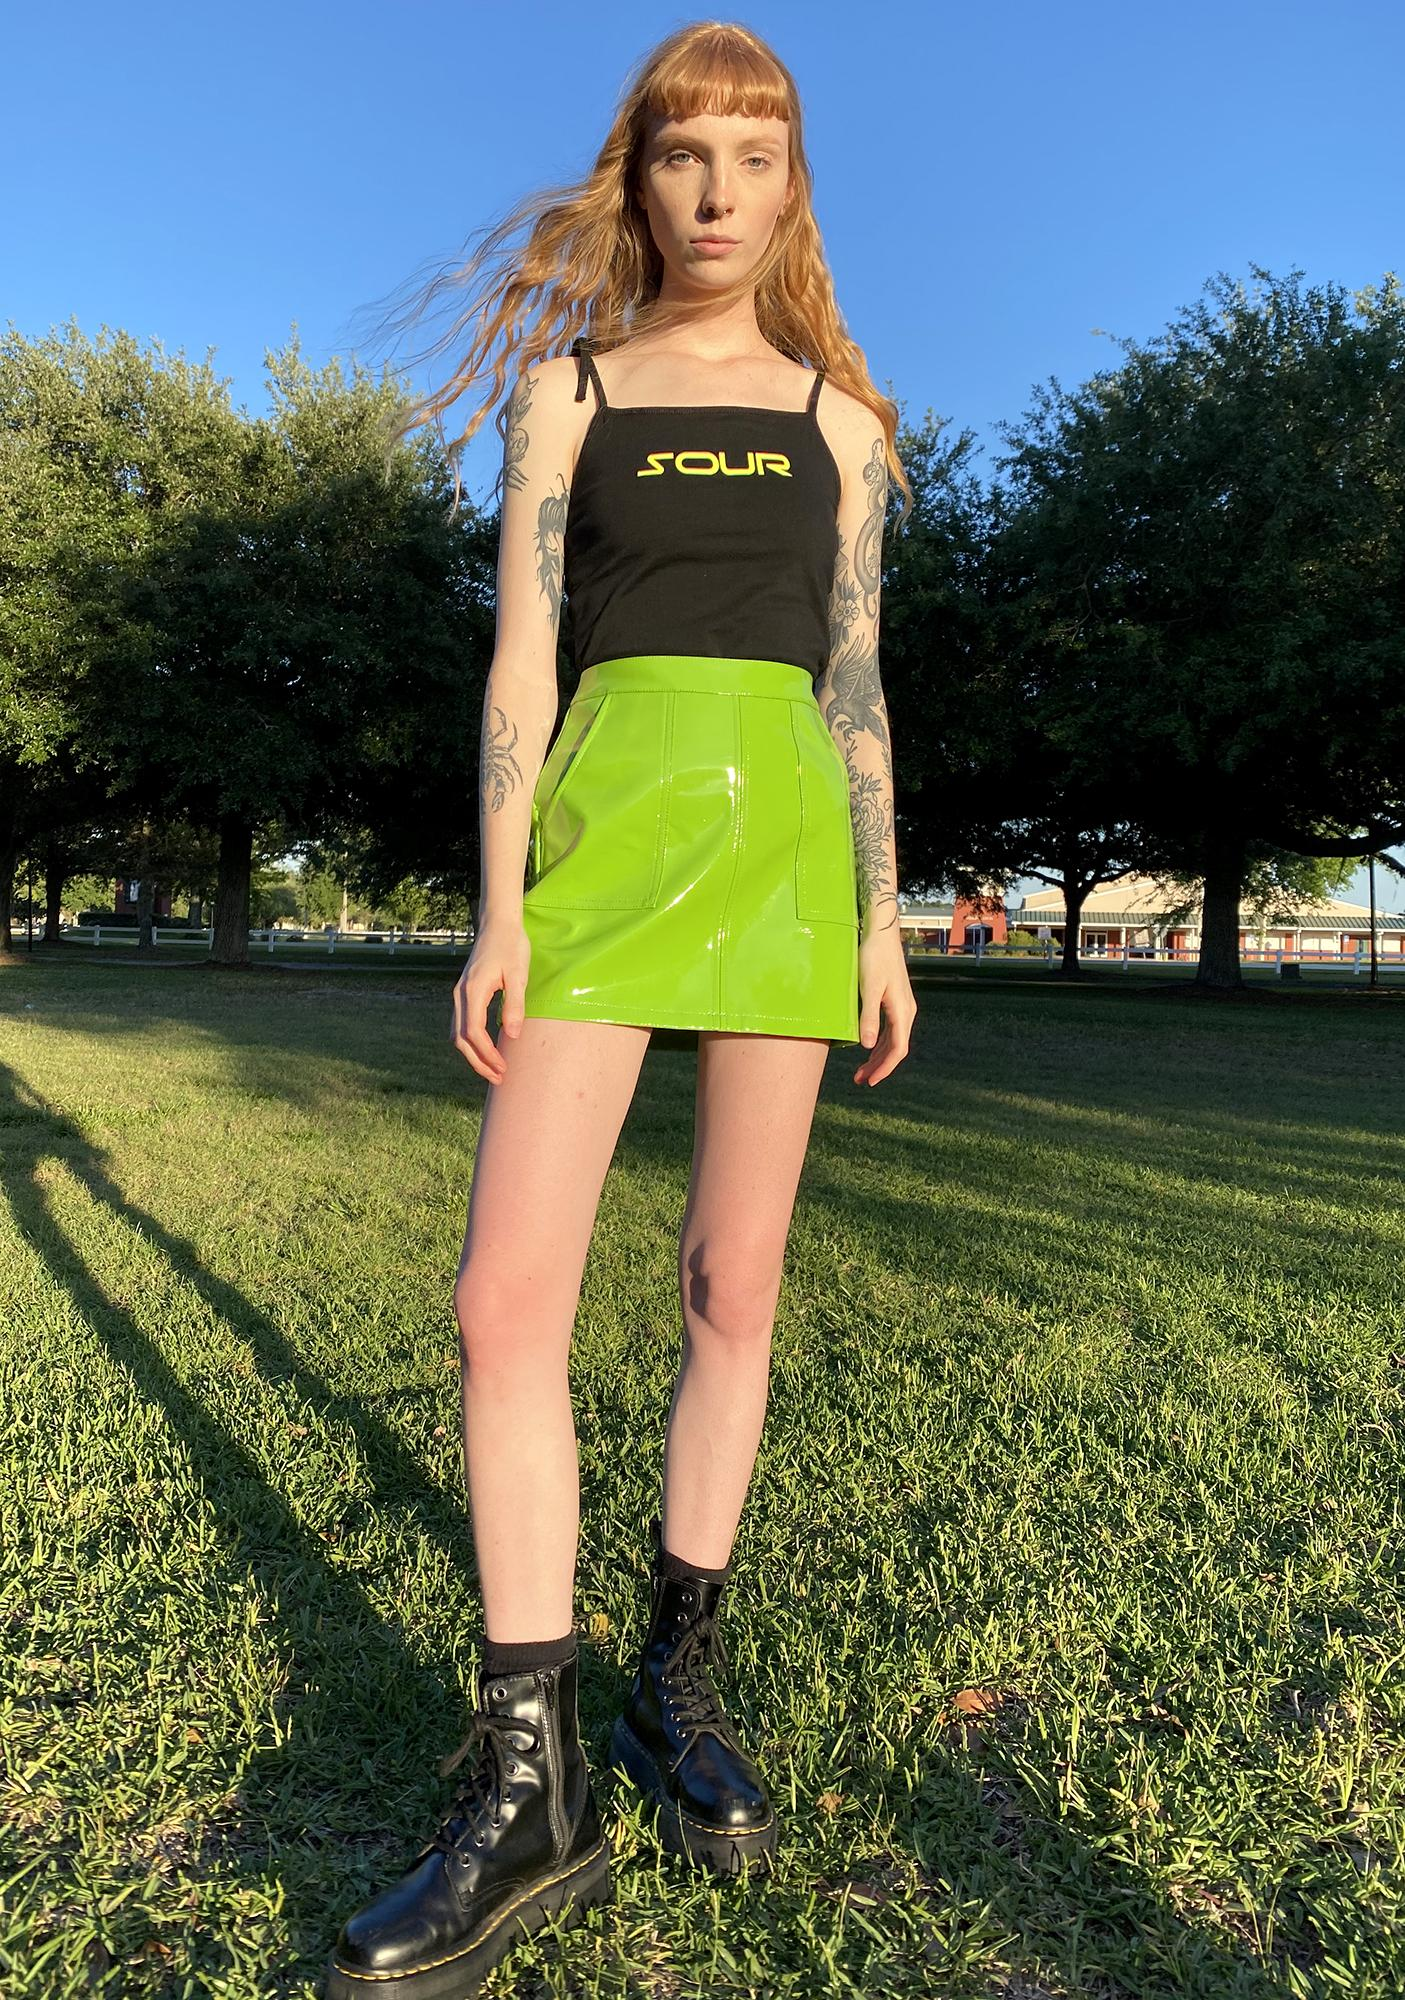 HOROSCOPEZ Different Reality Mini Skirt